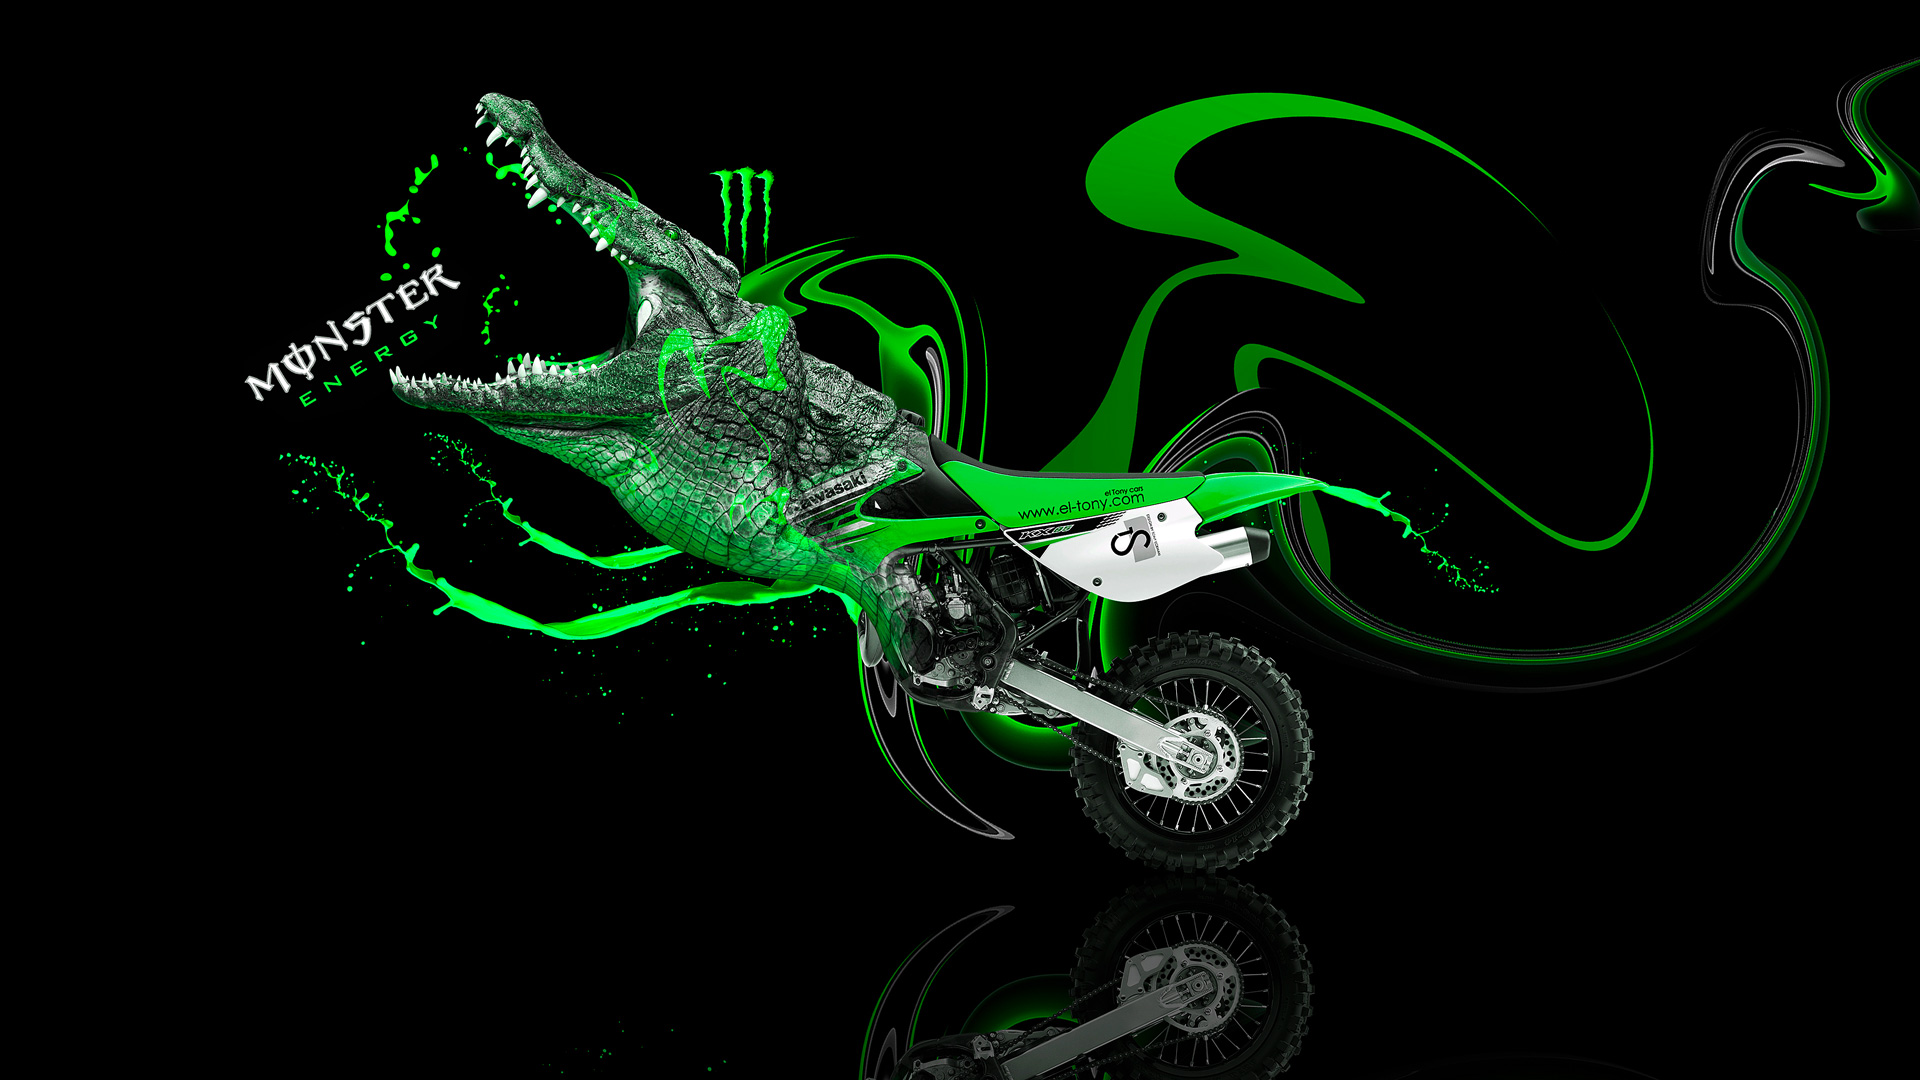 Superbe Monster Energy Moto Kawasaki Motocross KX85 Fantasy Plastic